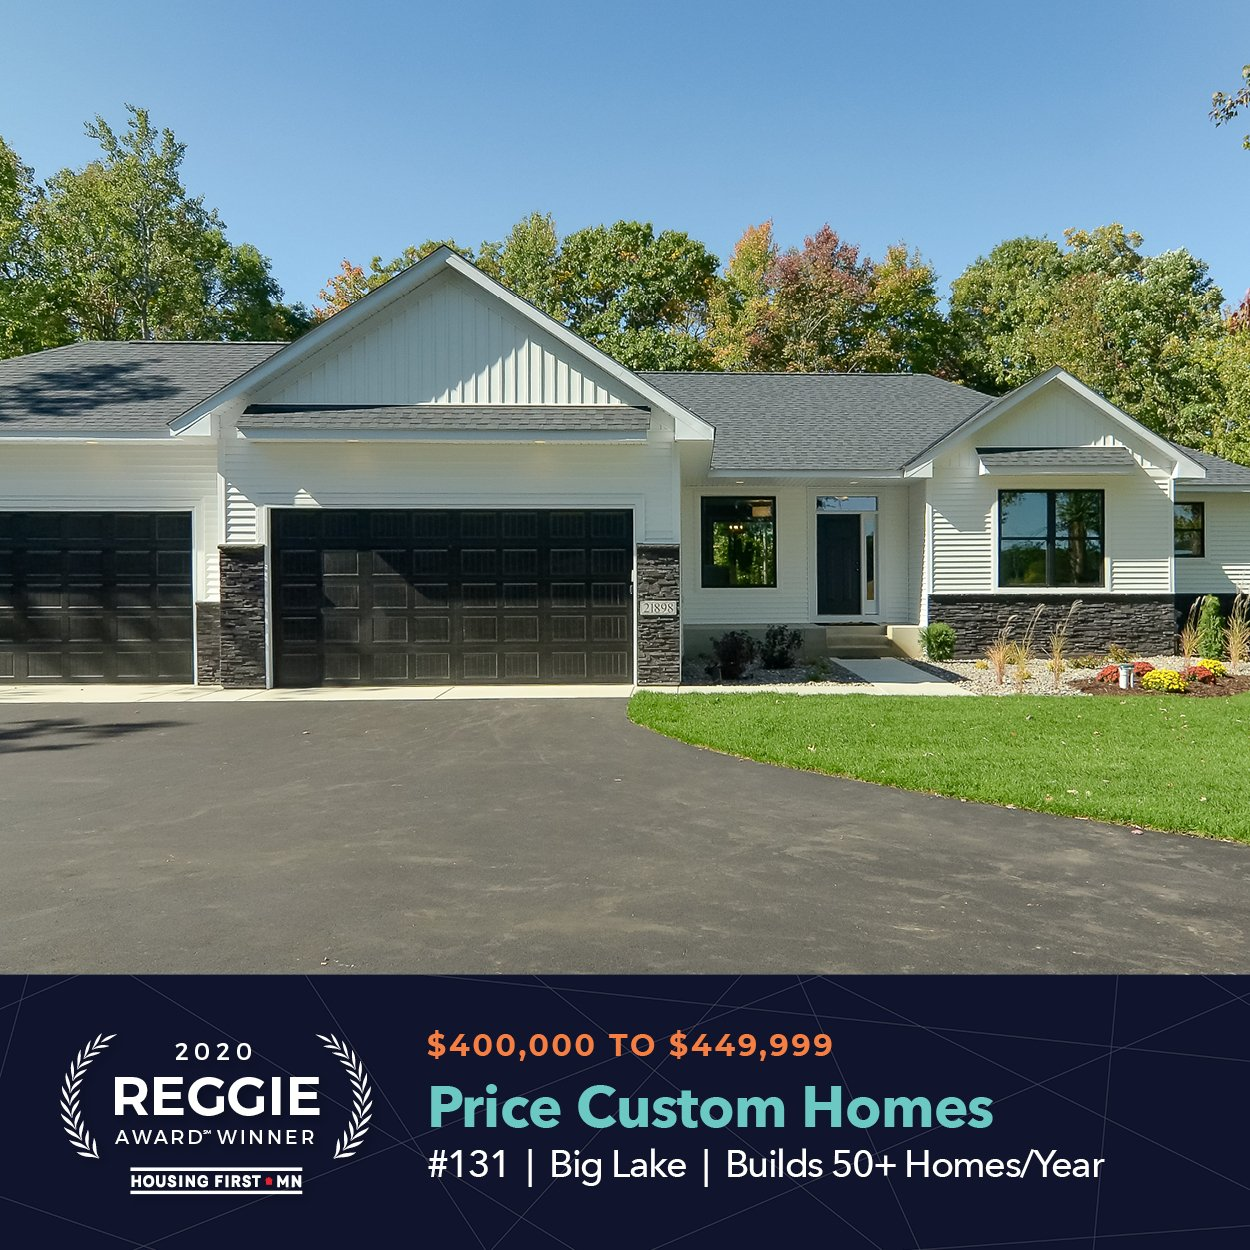 PriceCustomHomes_ReggieWinners_BIG20_131